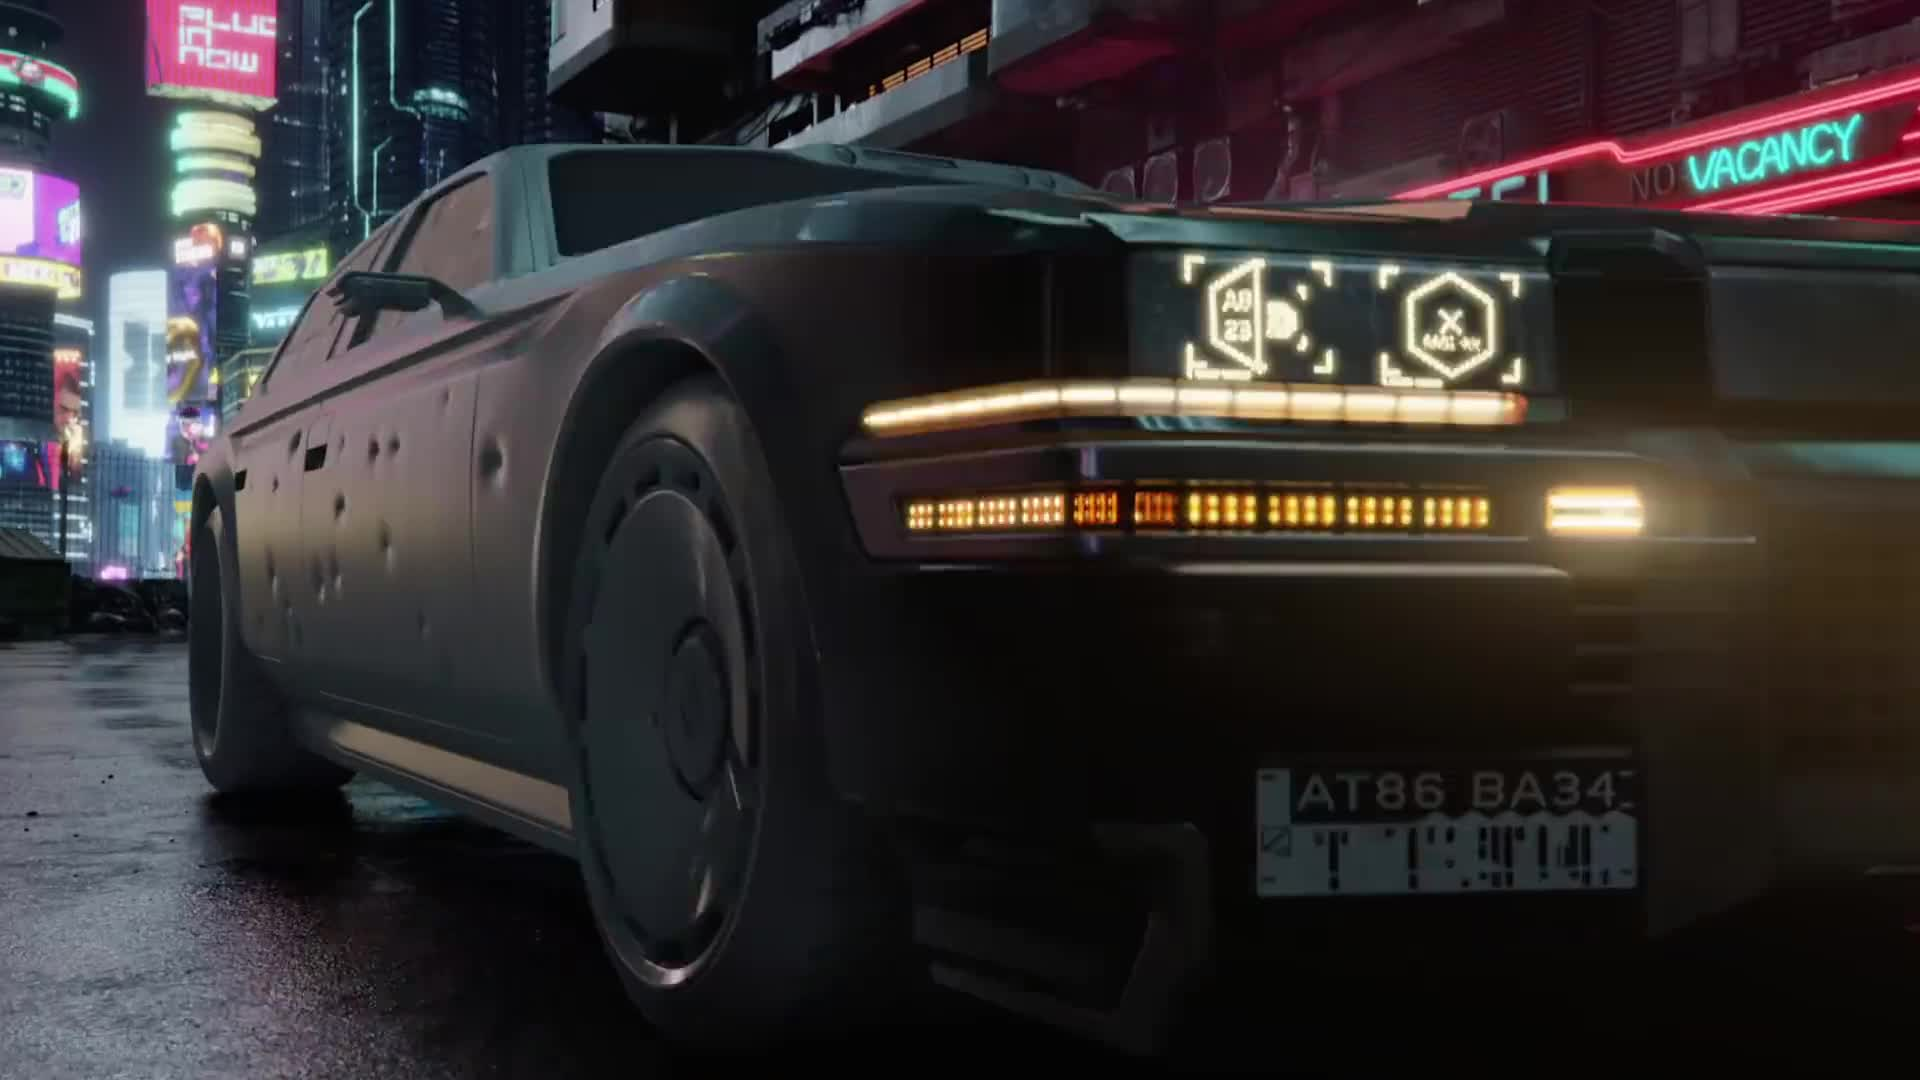 Cyberpunk 2077 - Official E3 2019 Cinematic Trailer - Behind the Scenes [HD] screen capture